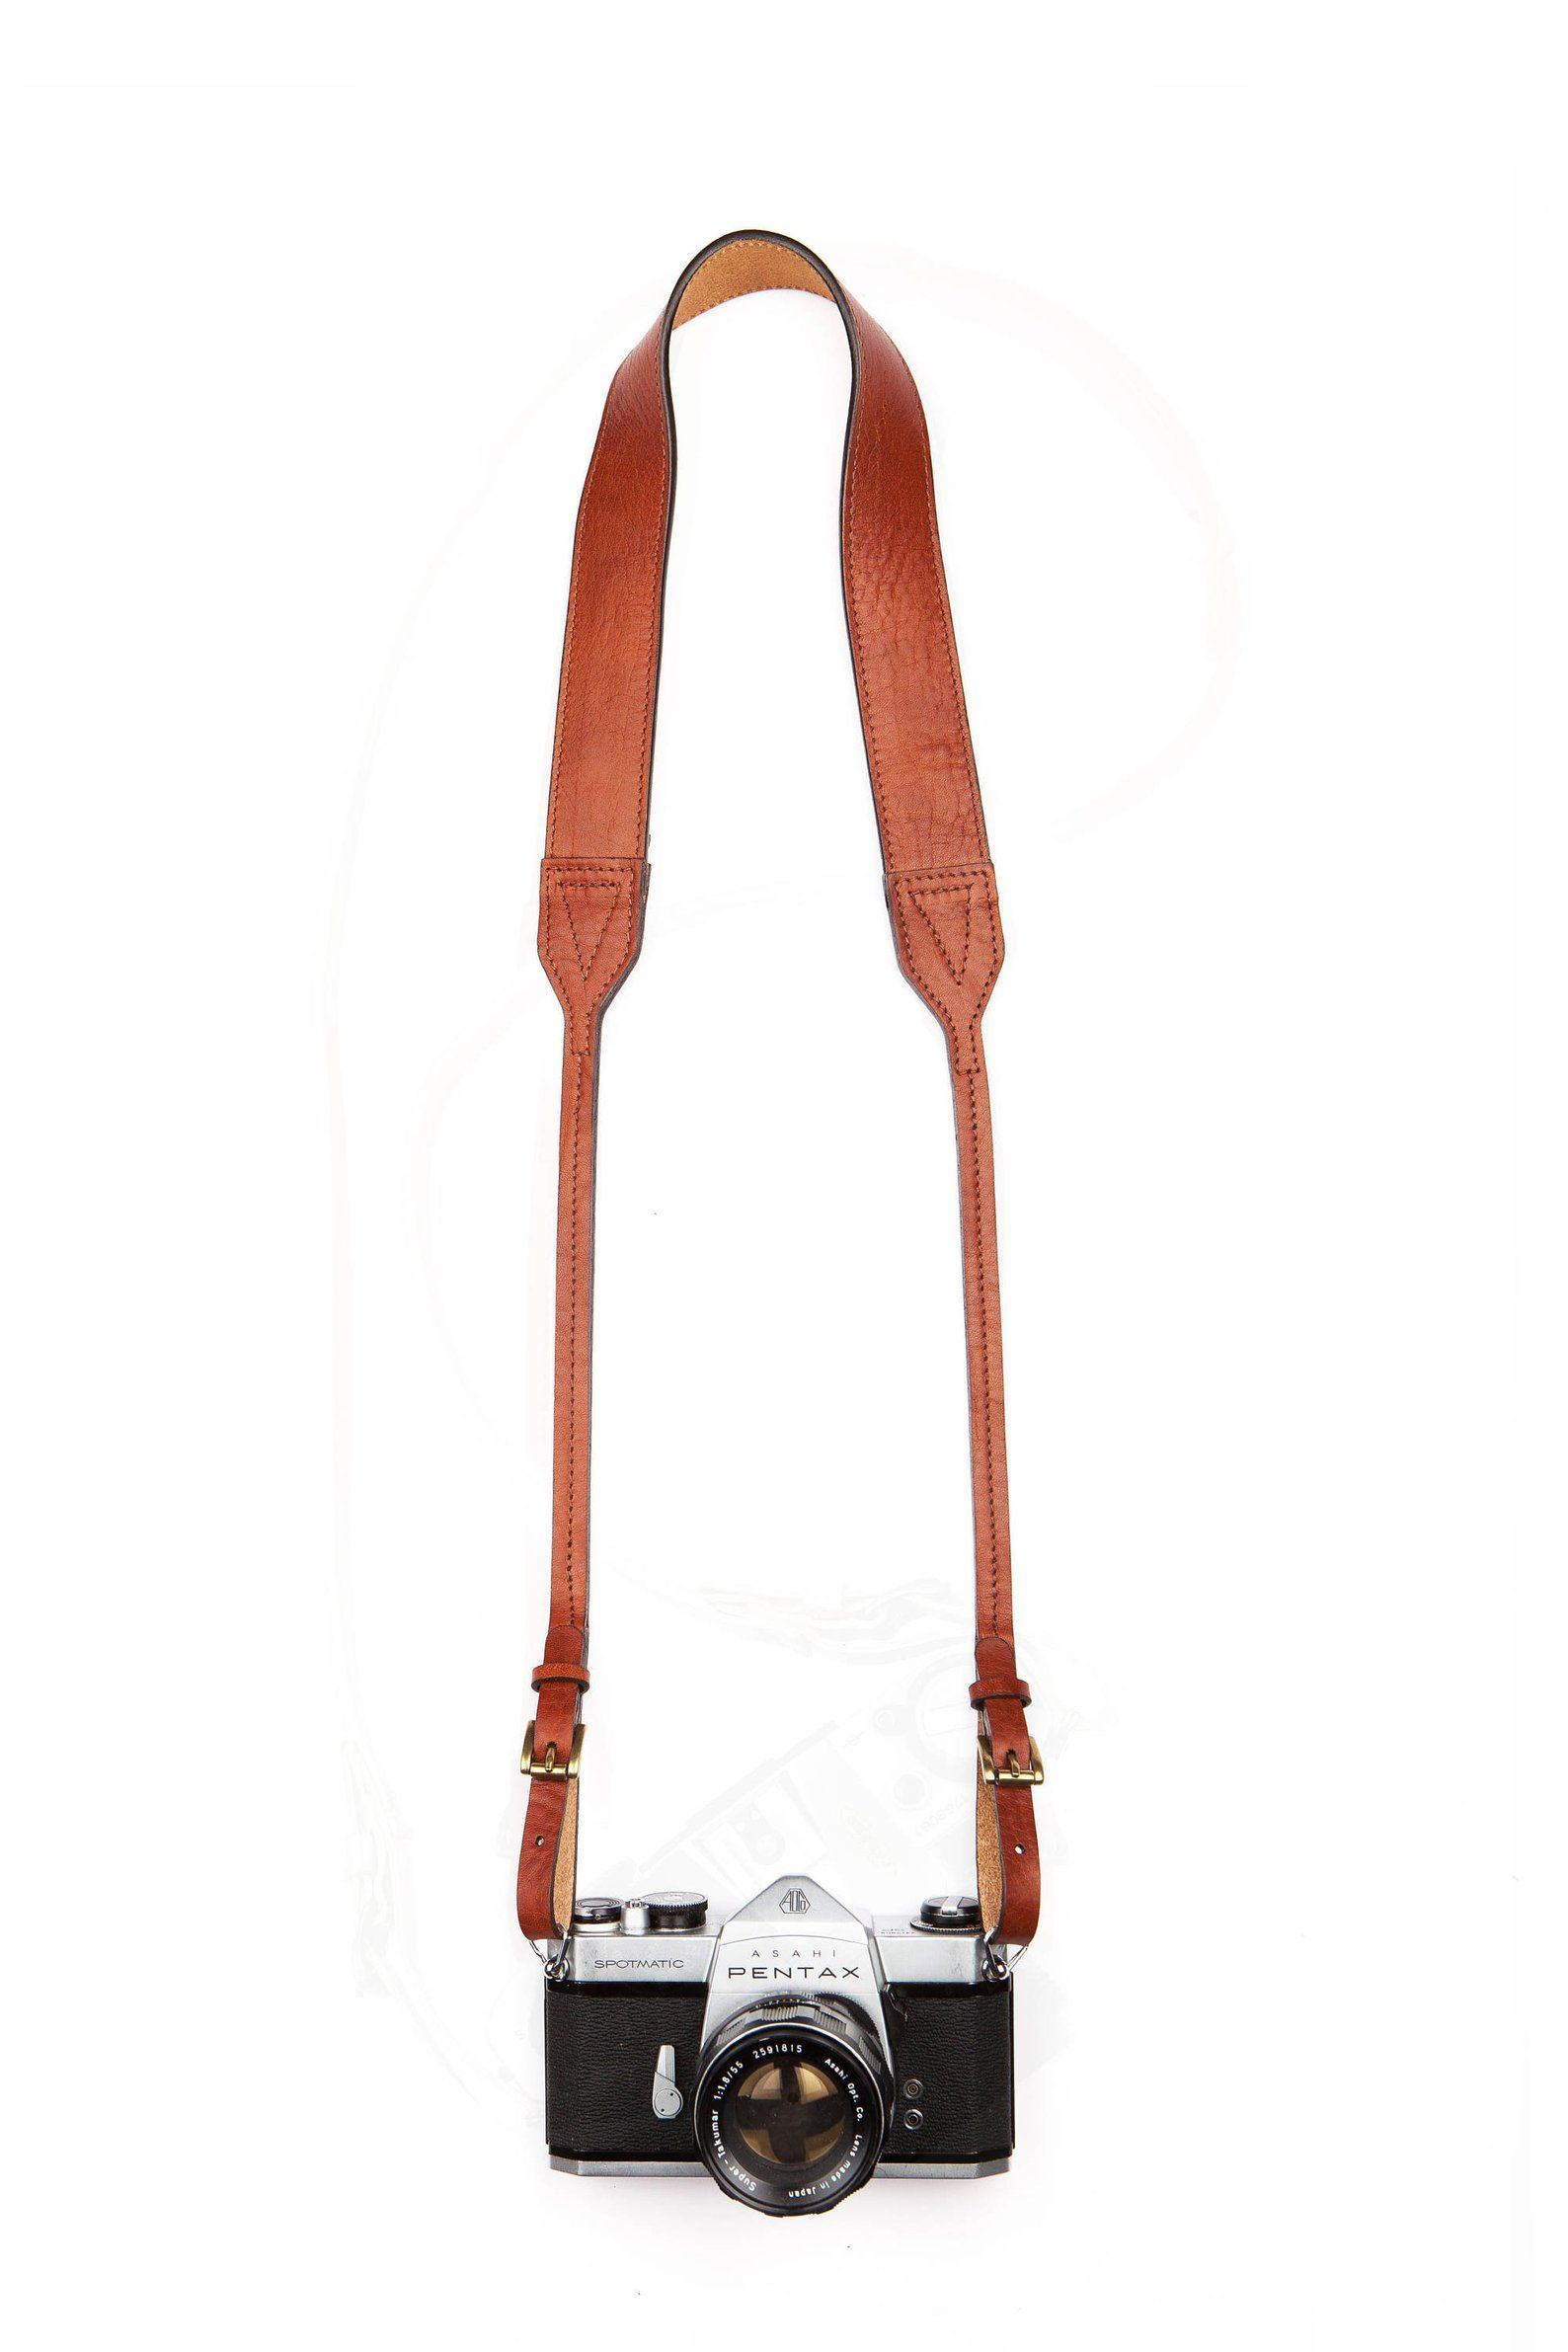 SPOTMATIC Original Leather CAMERA STRAP